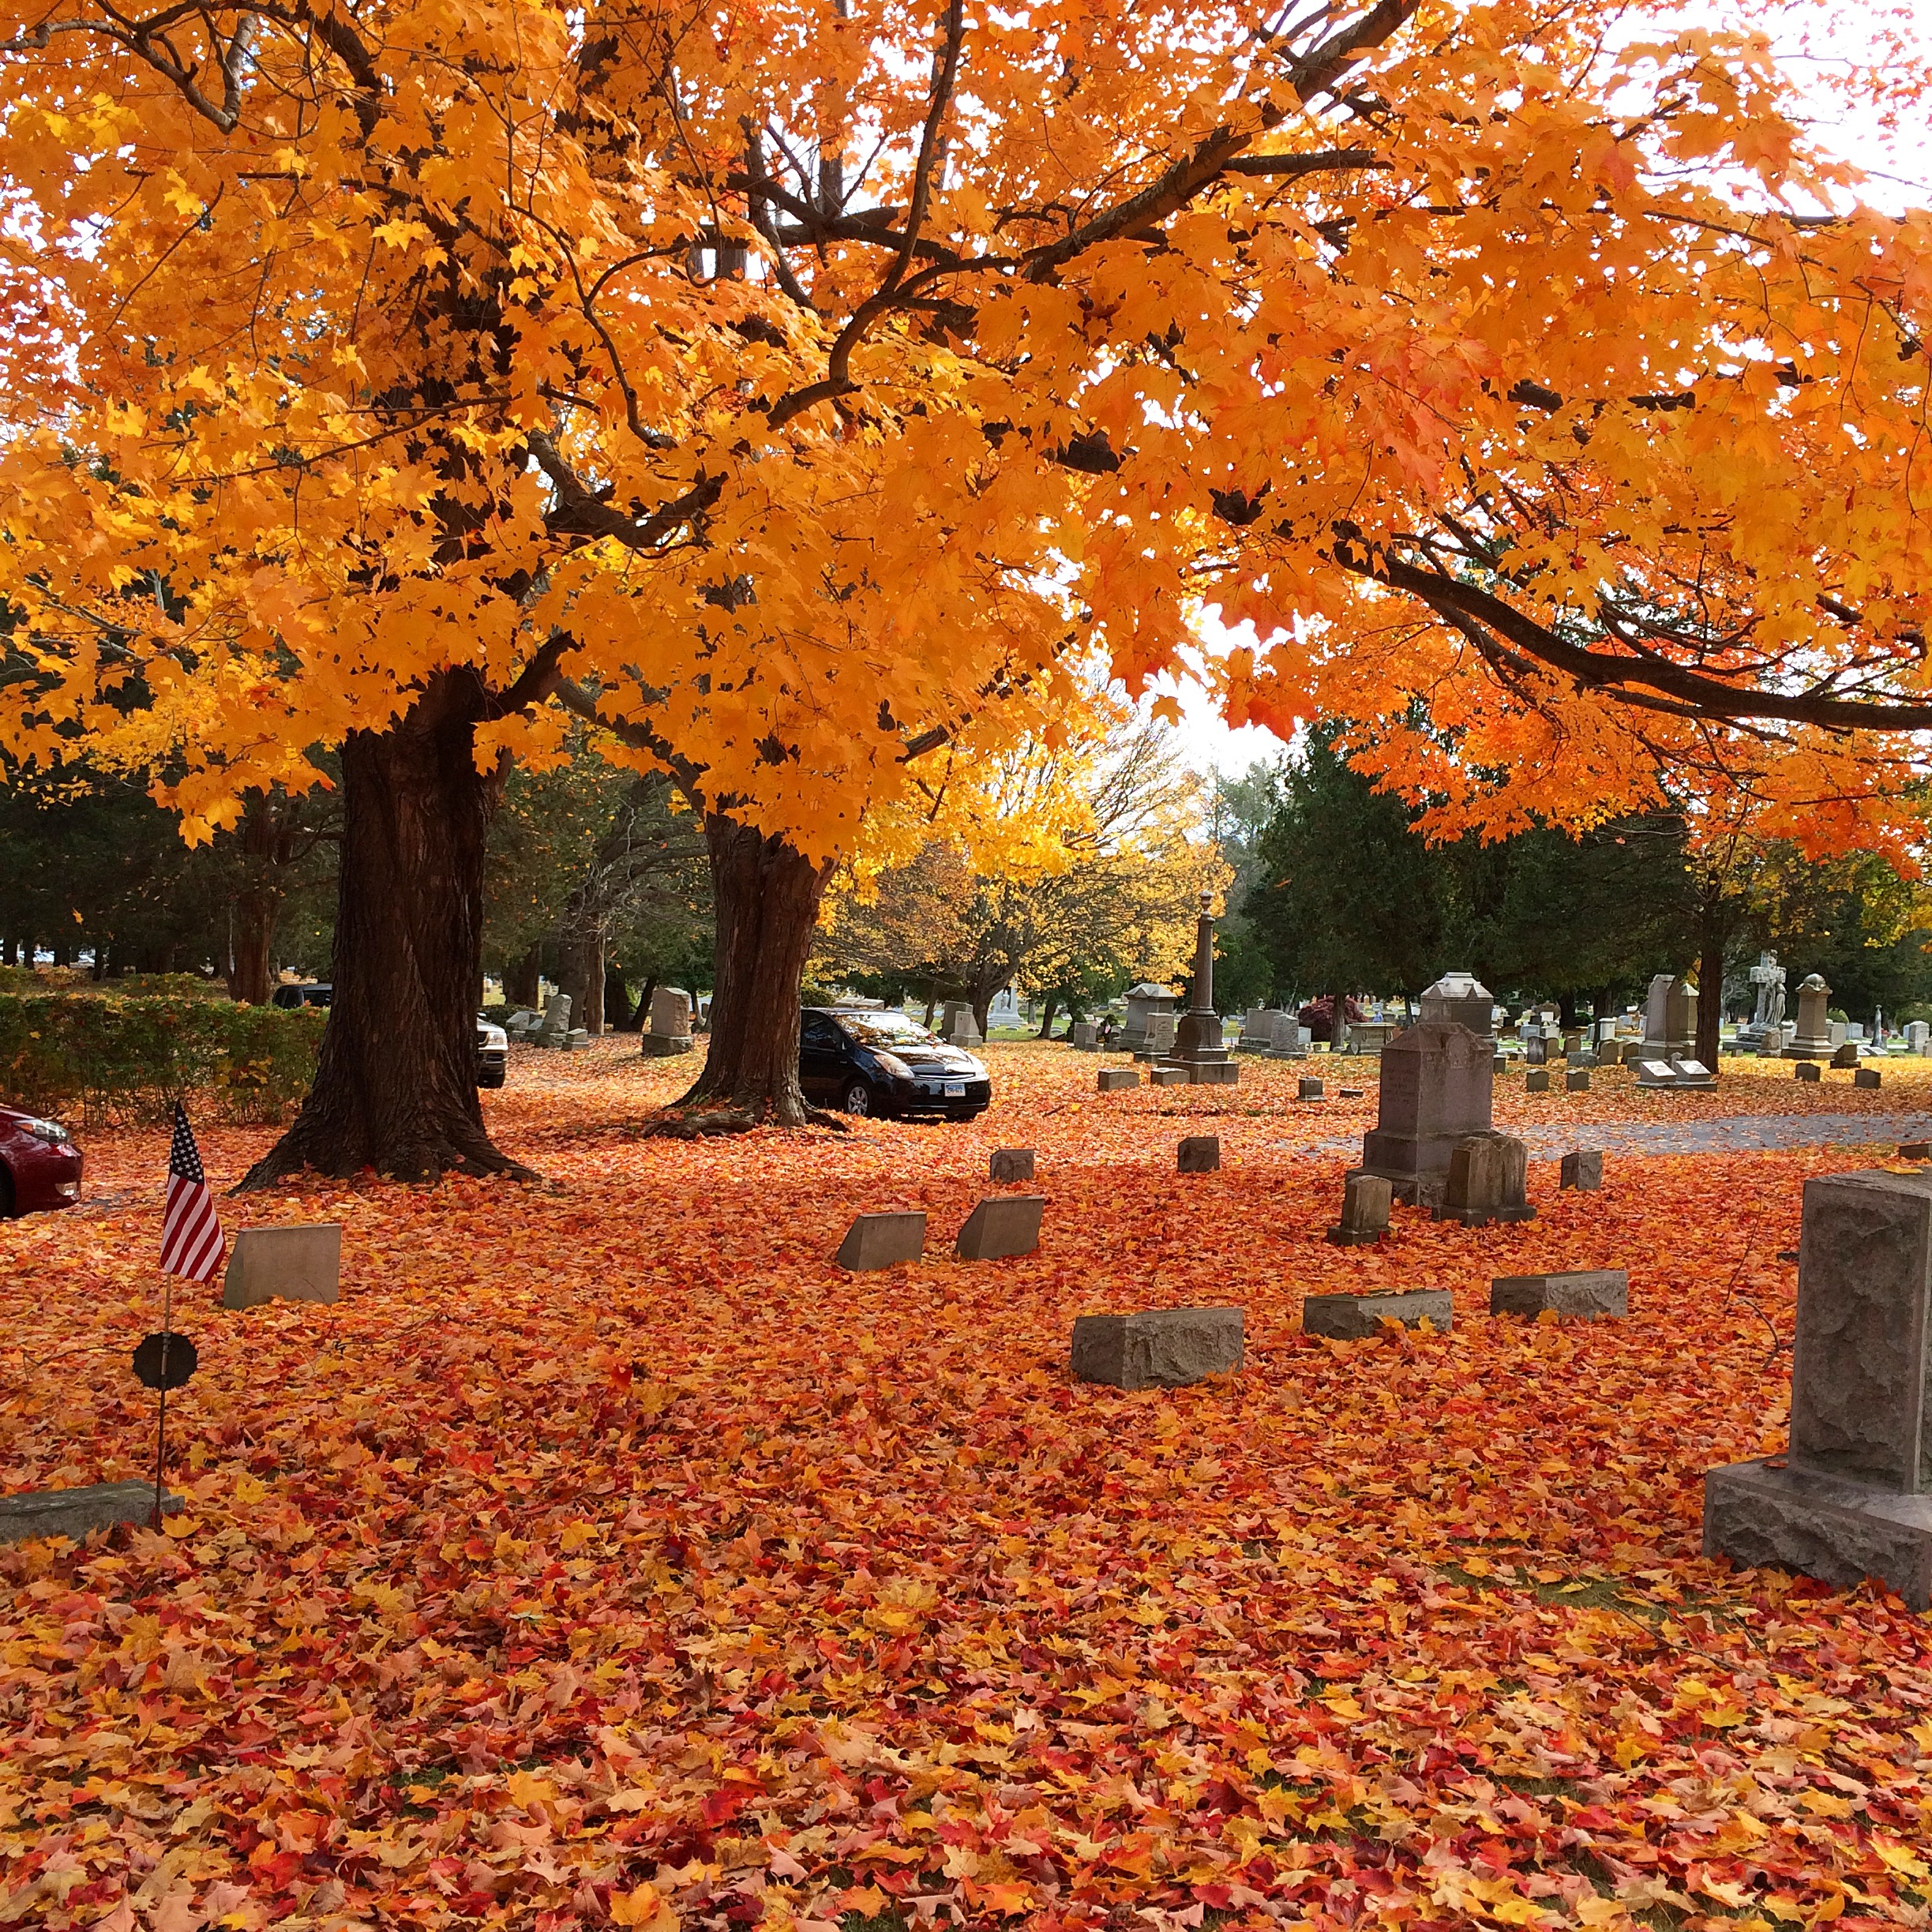 sugar maple foliage covers branches and ground in the graveyard